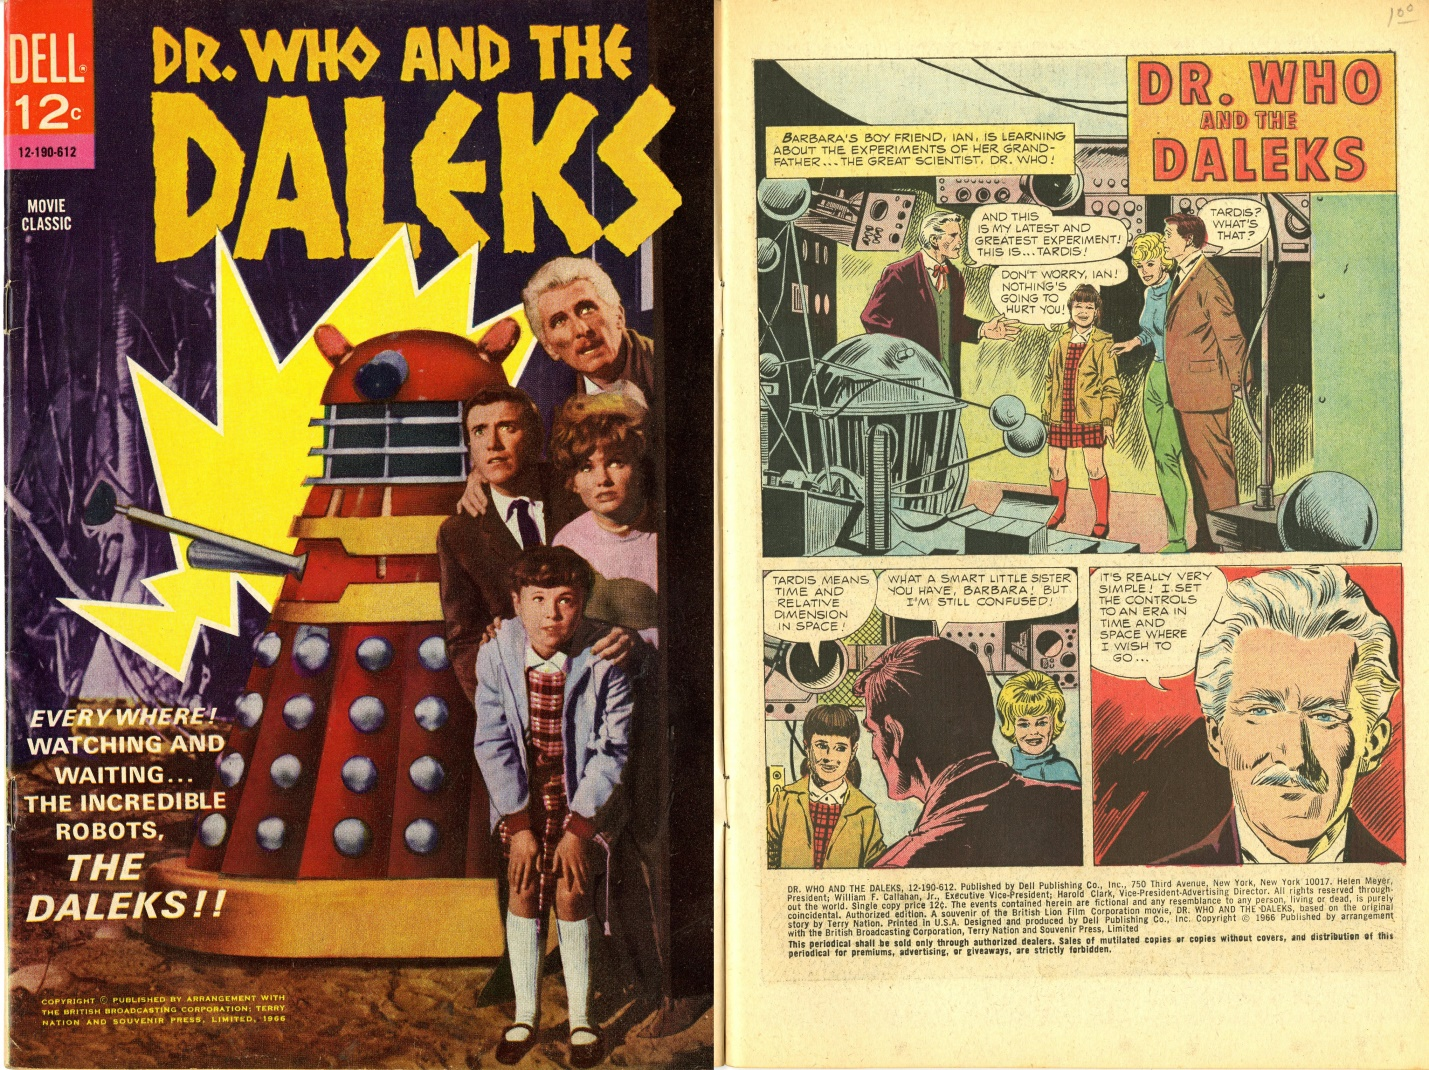 Dell Publishing Co., Inc., Dr. Who and the Daleks Movie Classic, cover and first page, 1966